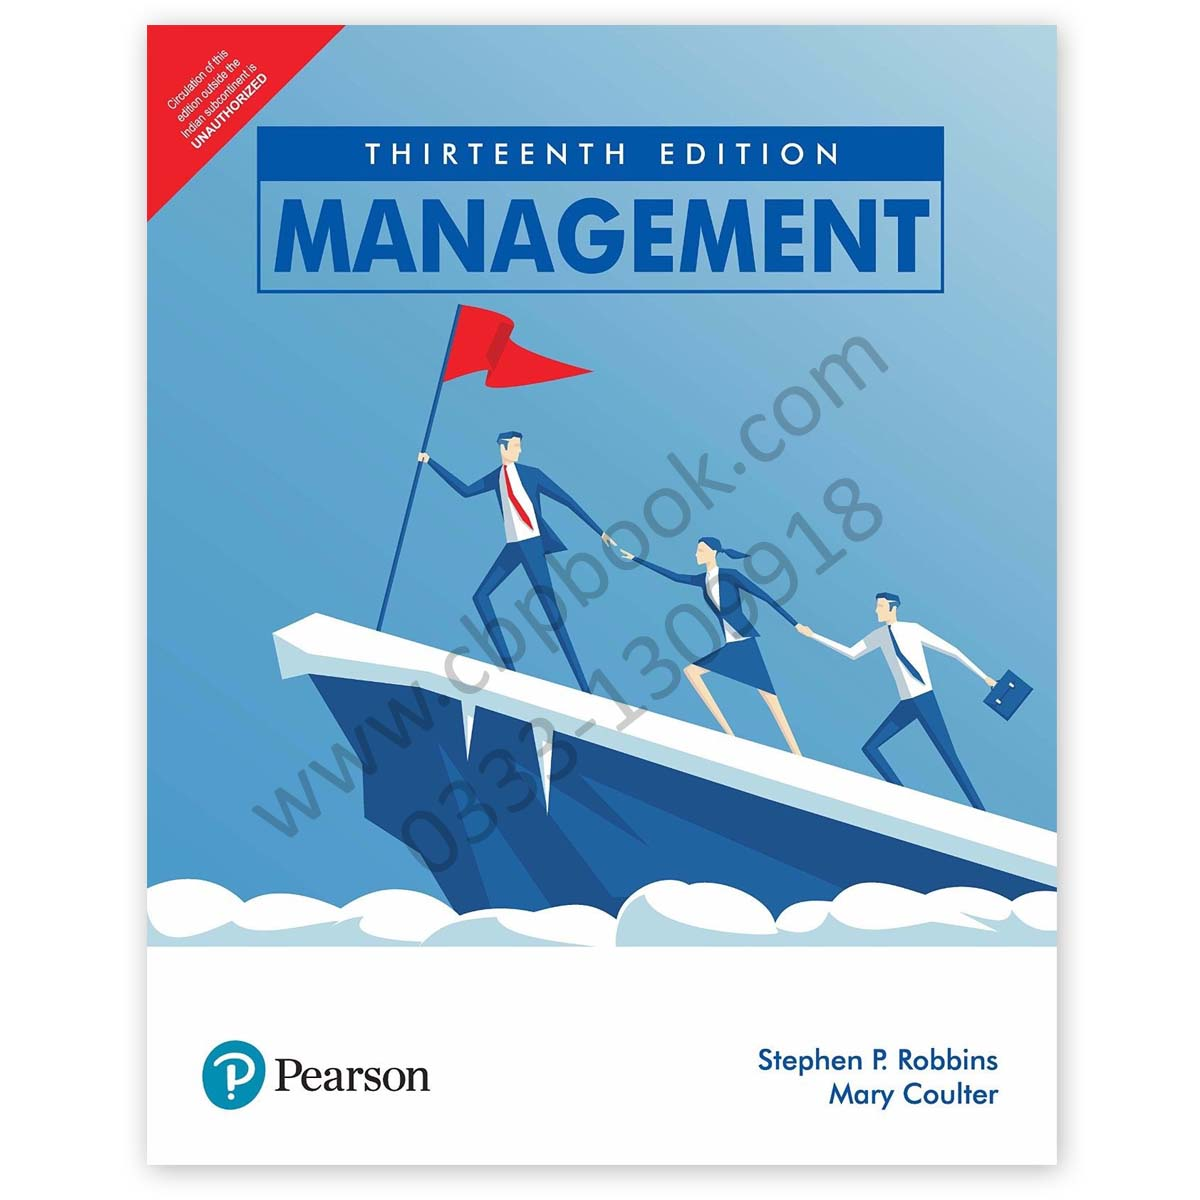 management 13 Free download sample: management, 13th edition test bank schermerhorn bachrach this is completed downloadable package test bank for management, 13th edition by john r.